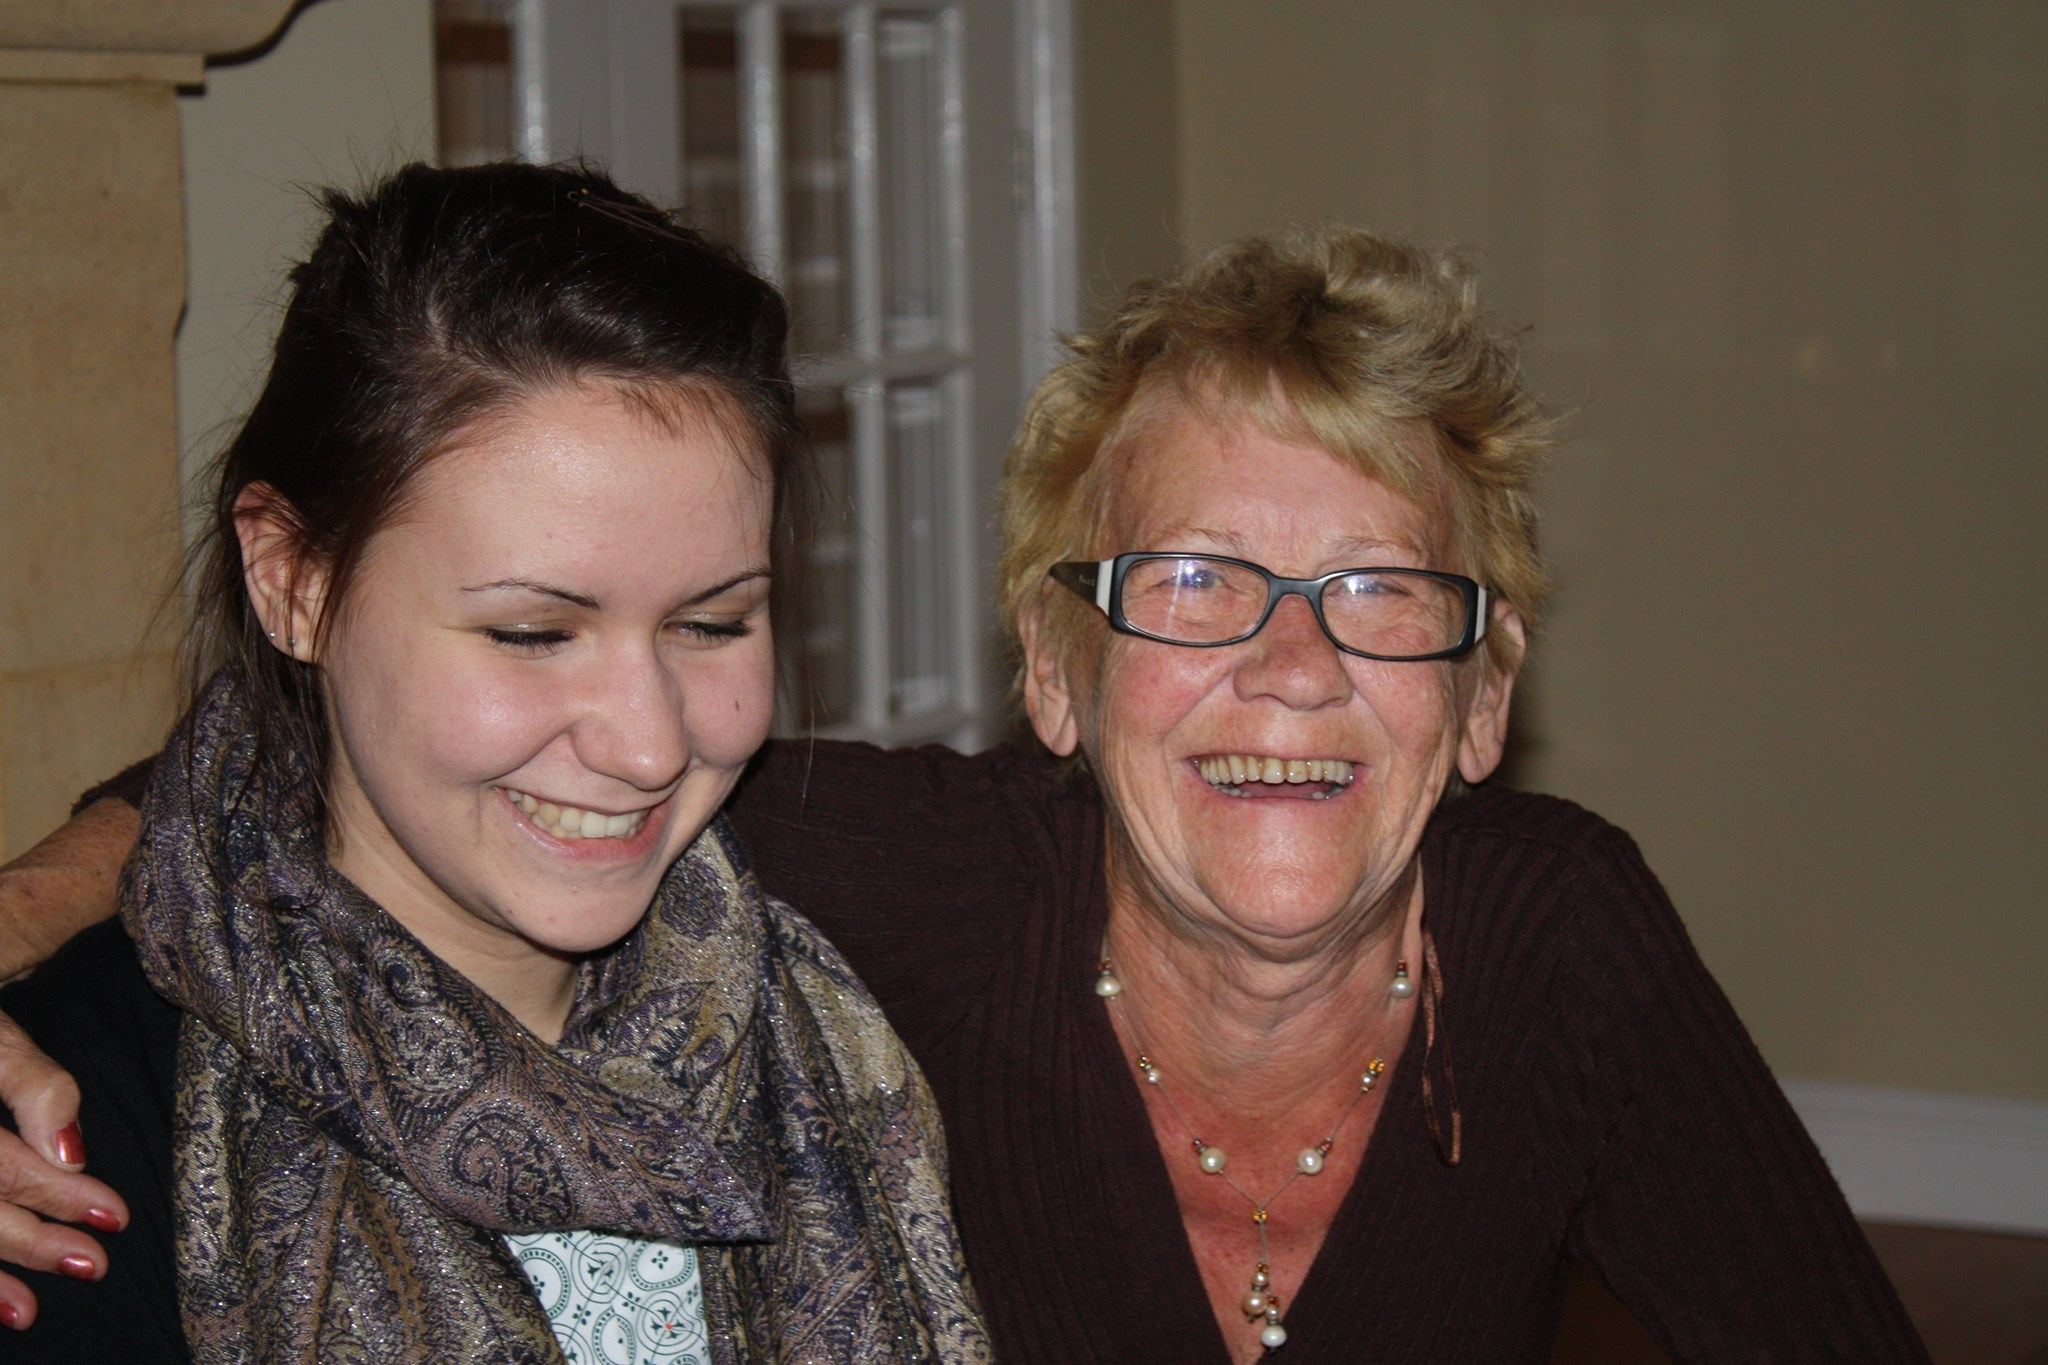 Me and Nan on my 18th birthday